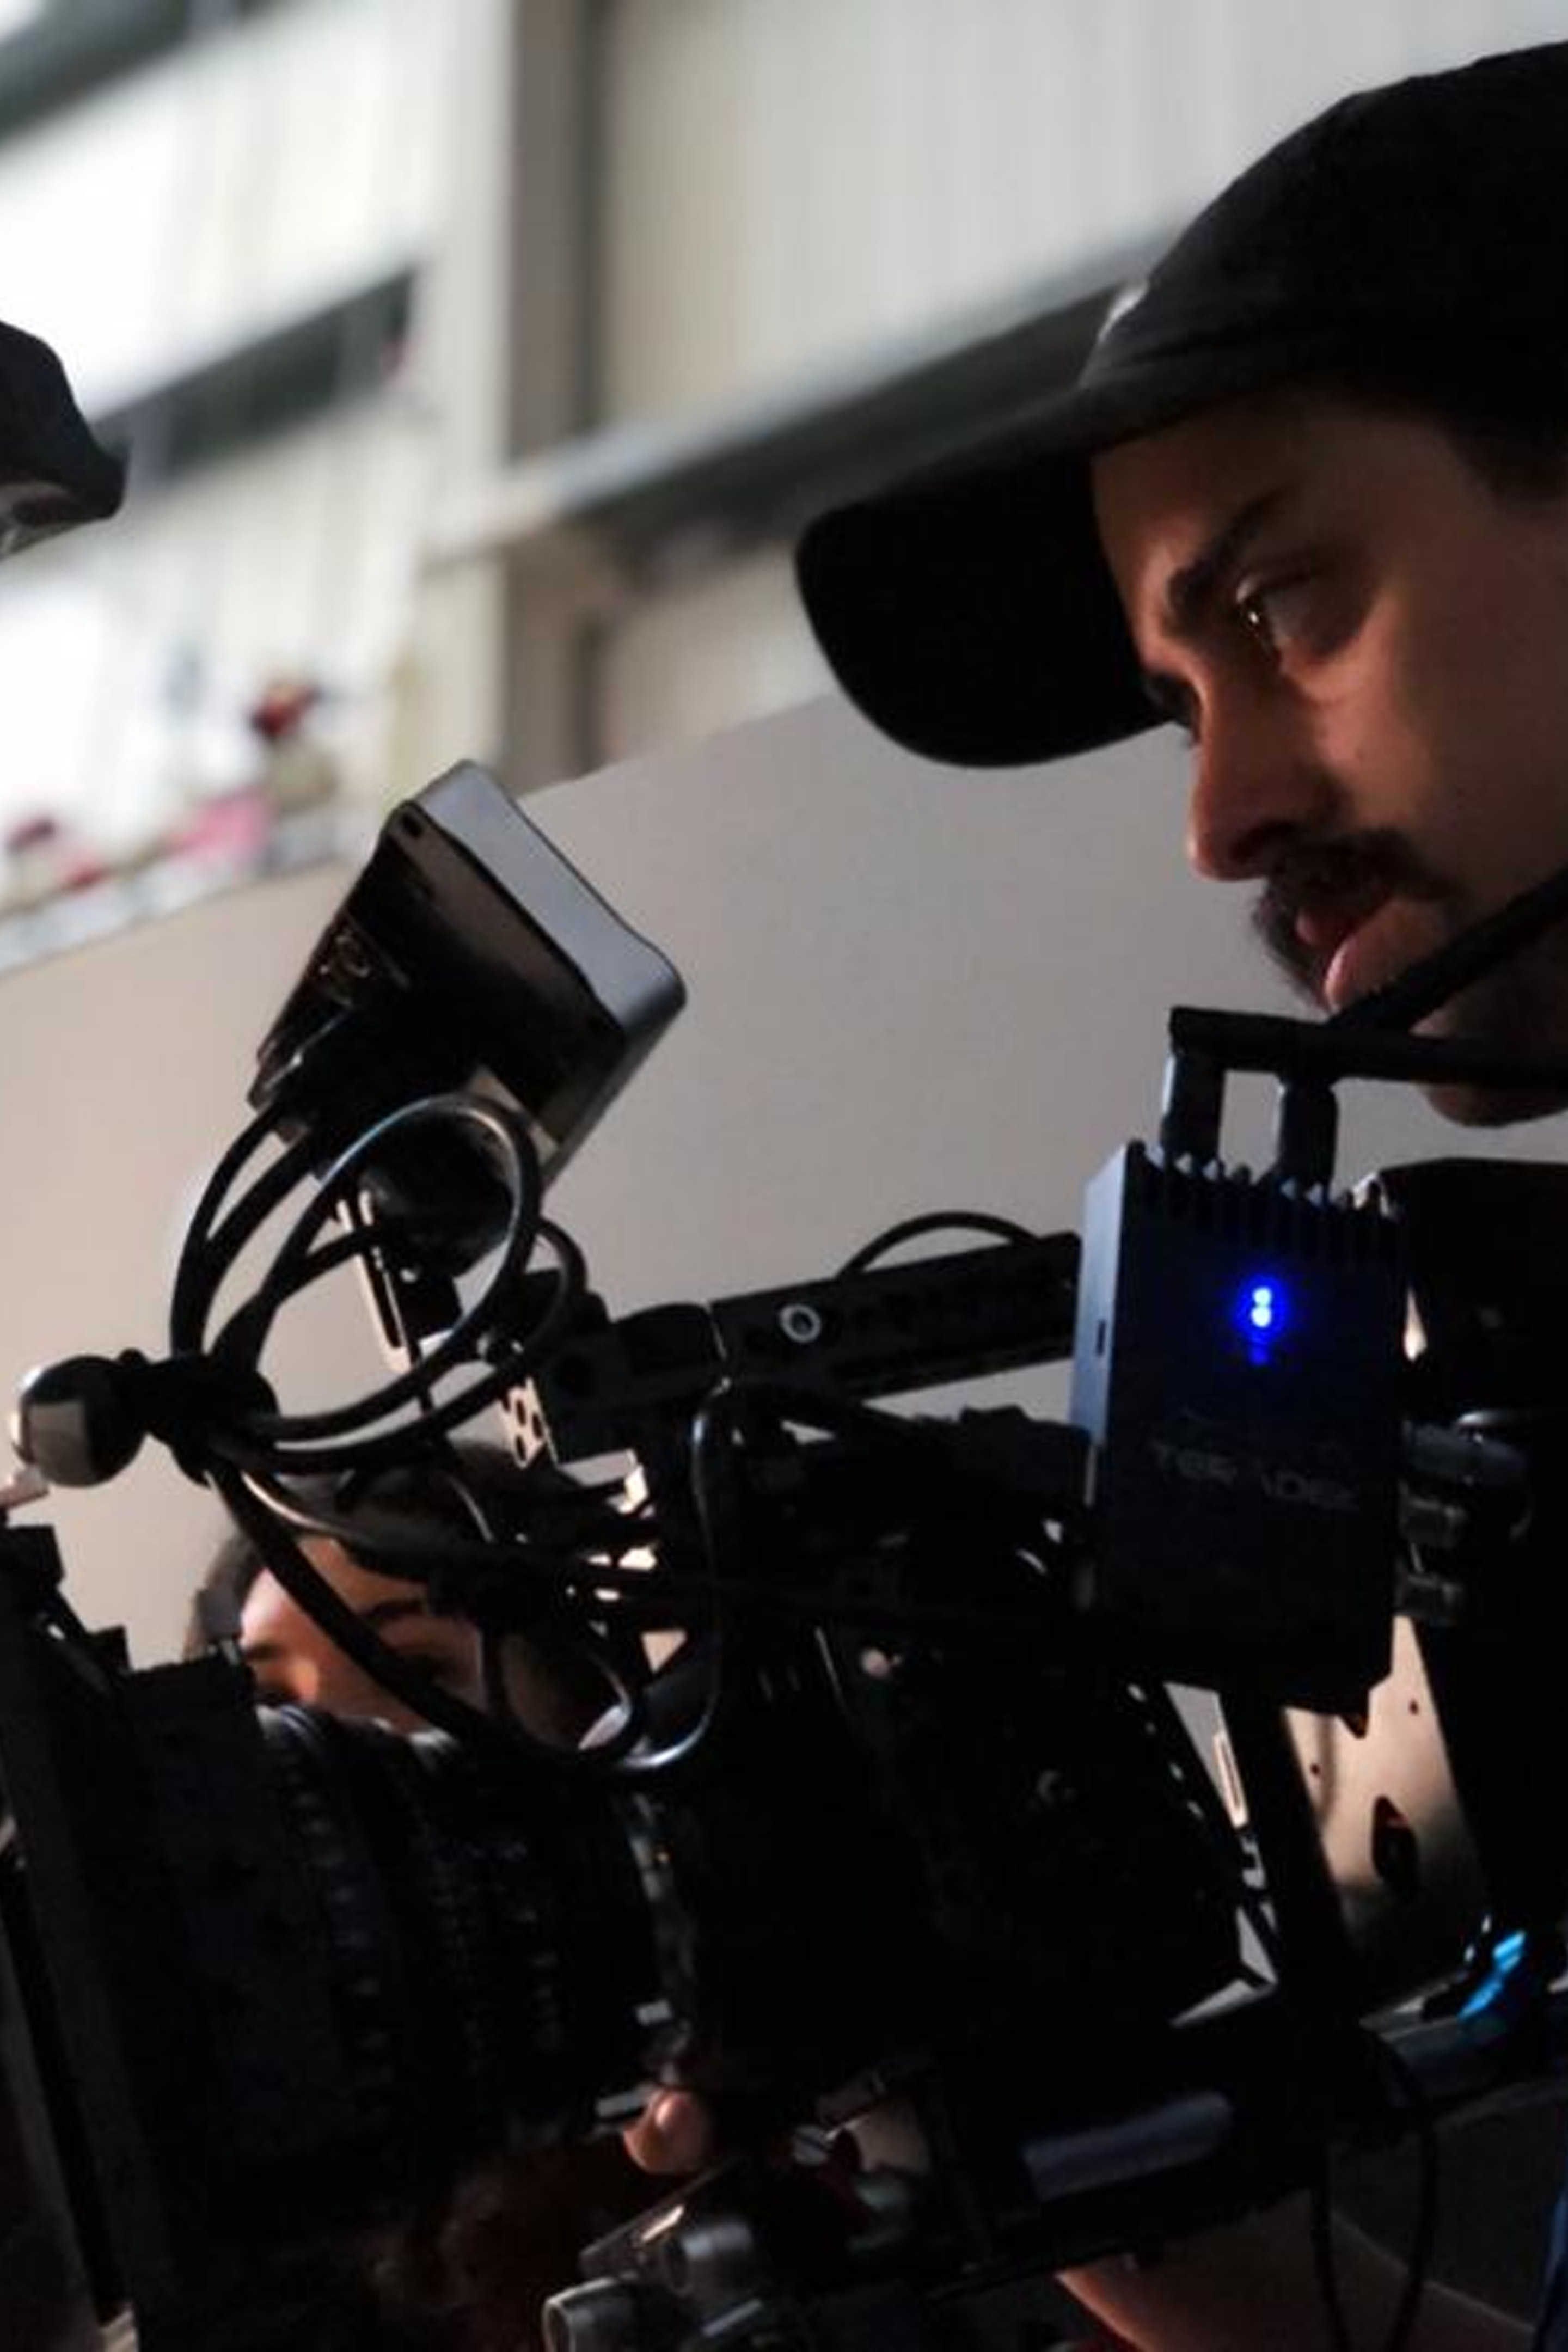 Filmmaking with the Blackmagic, a conversation with Director Harry Scott